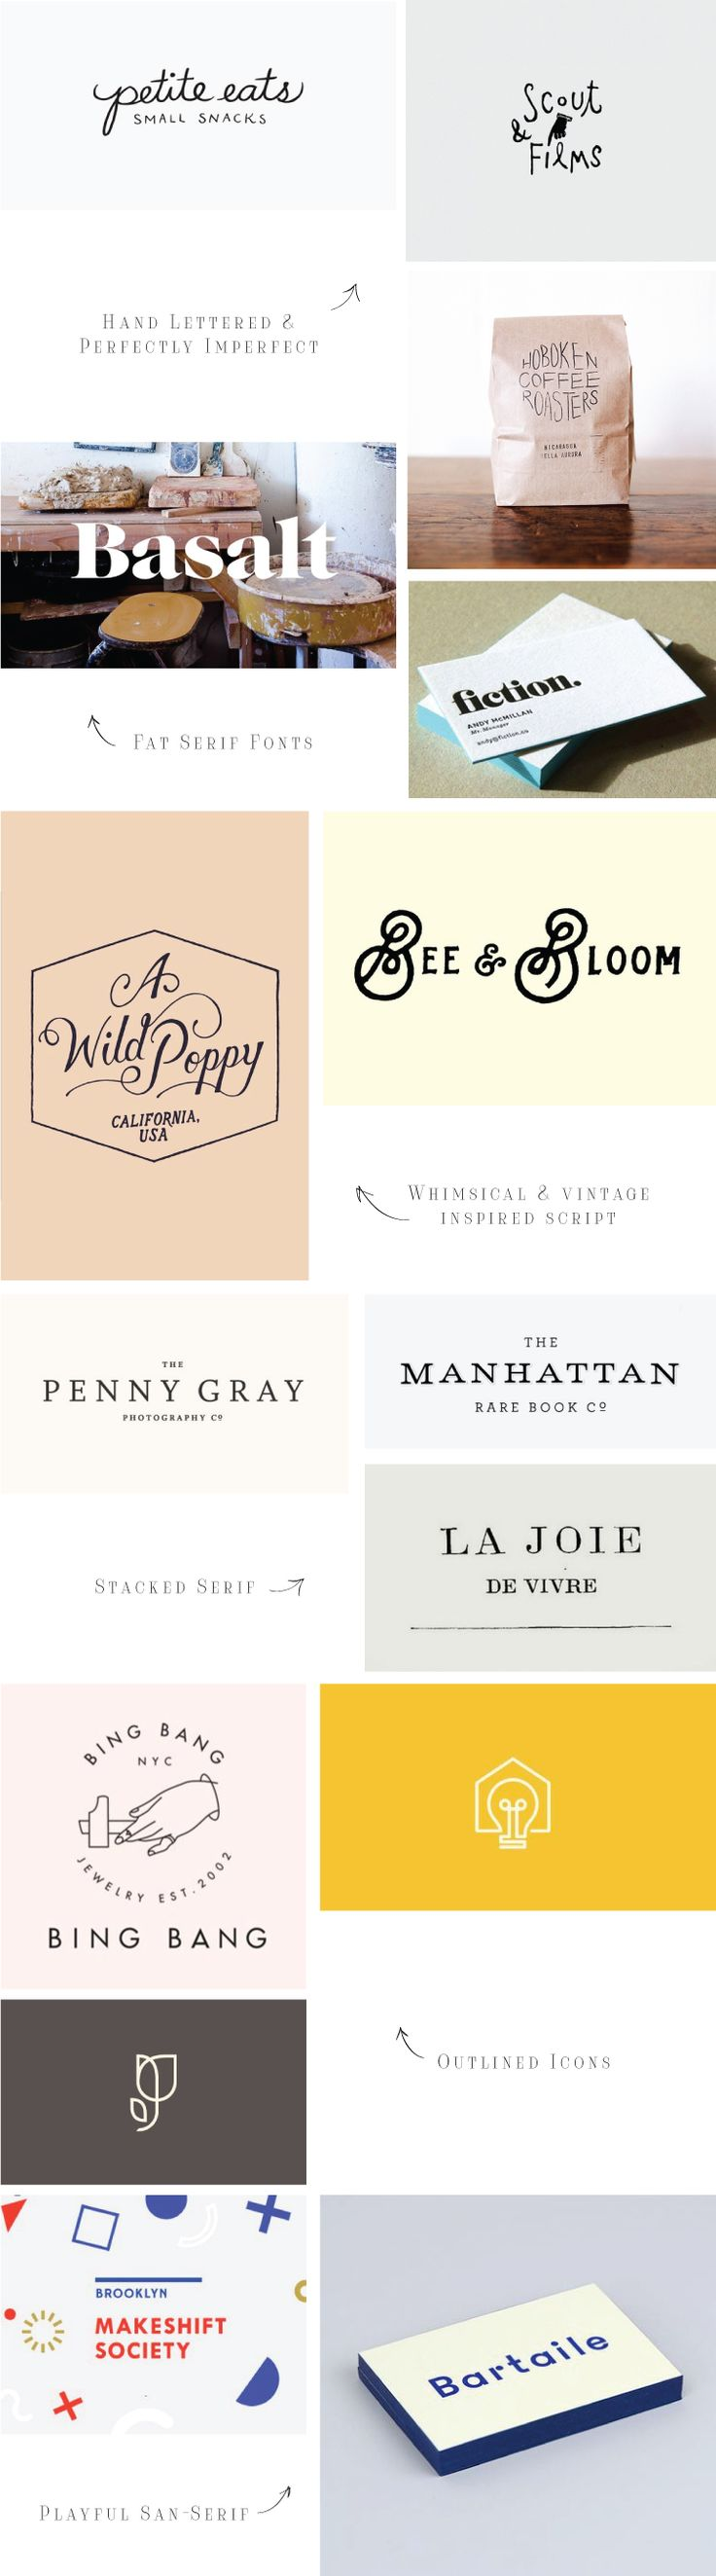 Logo Trend Inspiration! Hand-lettered, fat serifs, whimsical & vintage storybook inspired, outlined icons, and playful san-serifs.